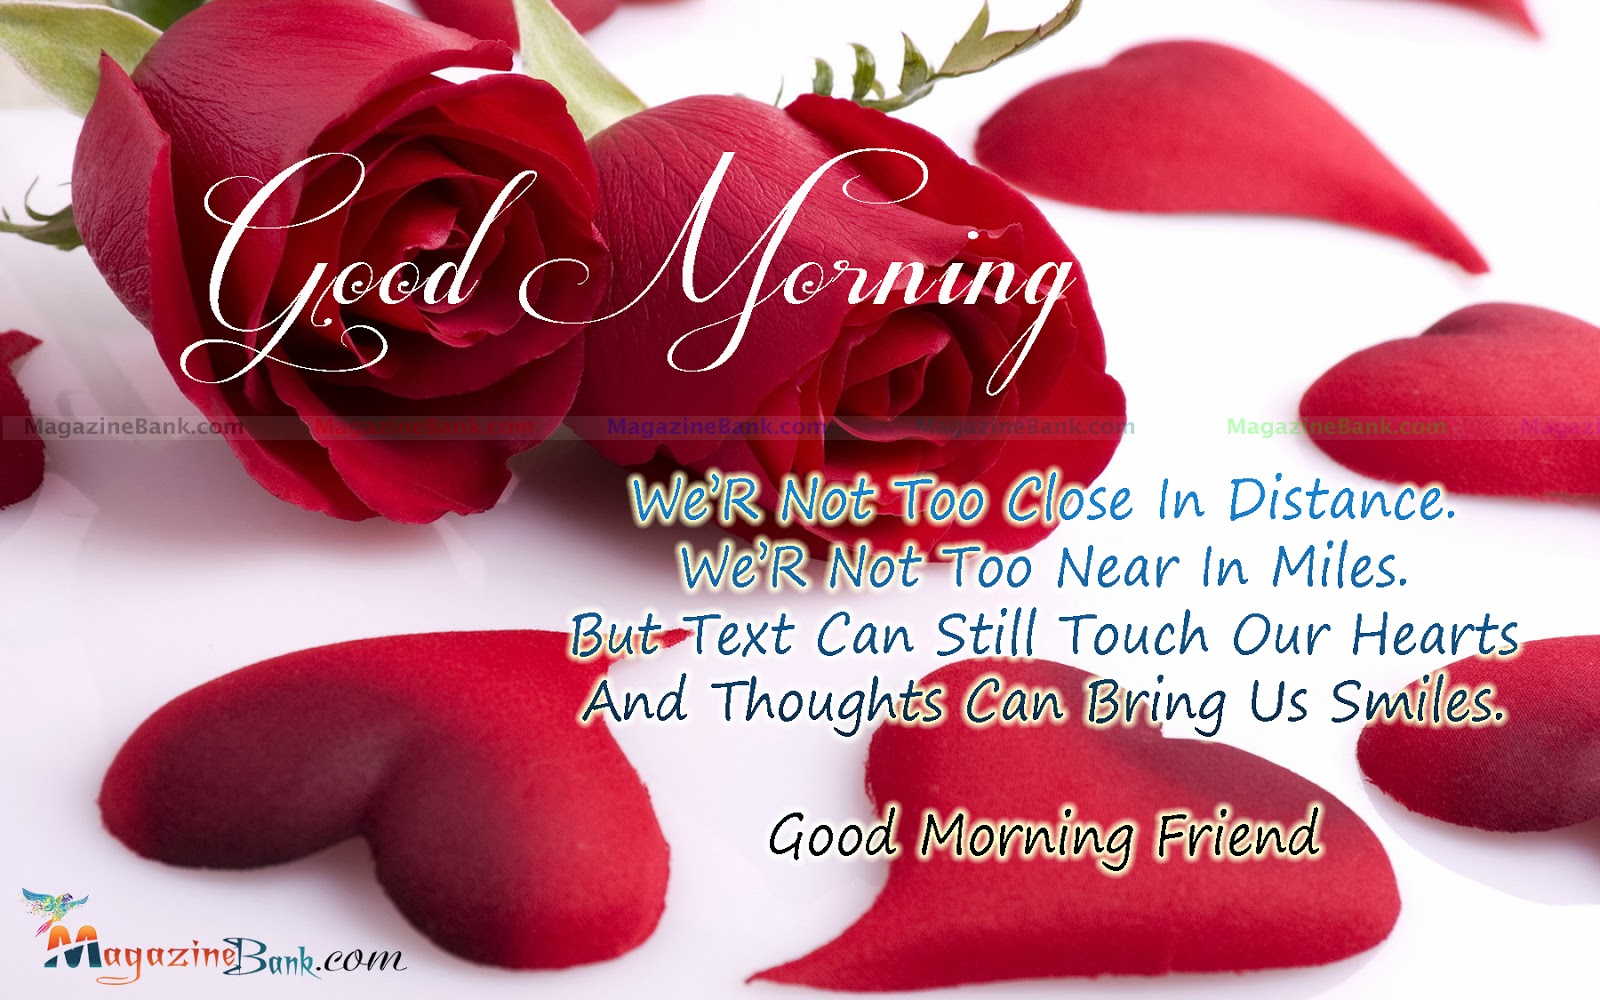 Good morning wishes with quotes for dearest friends nicewishes good morning wishes with quotes for friends kristyandbryce Choice Image